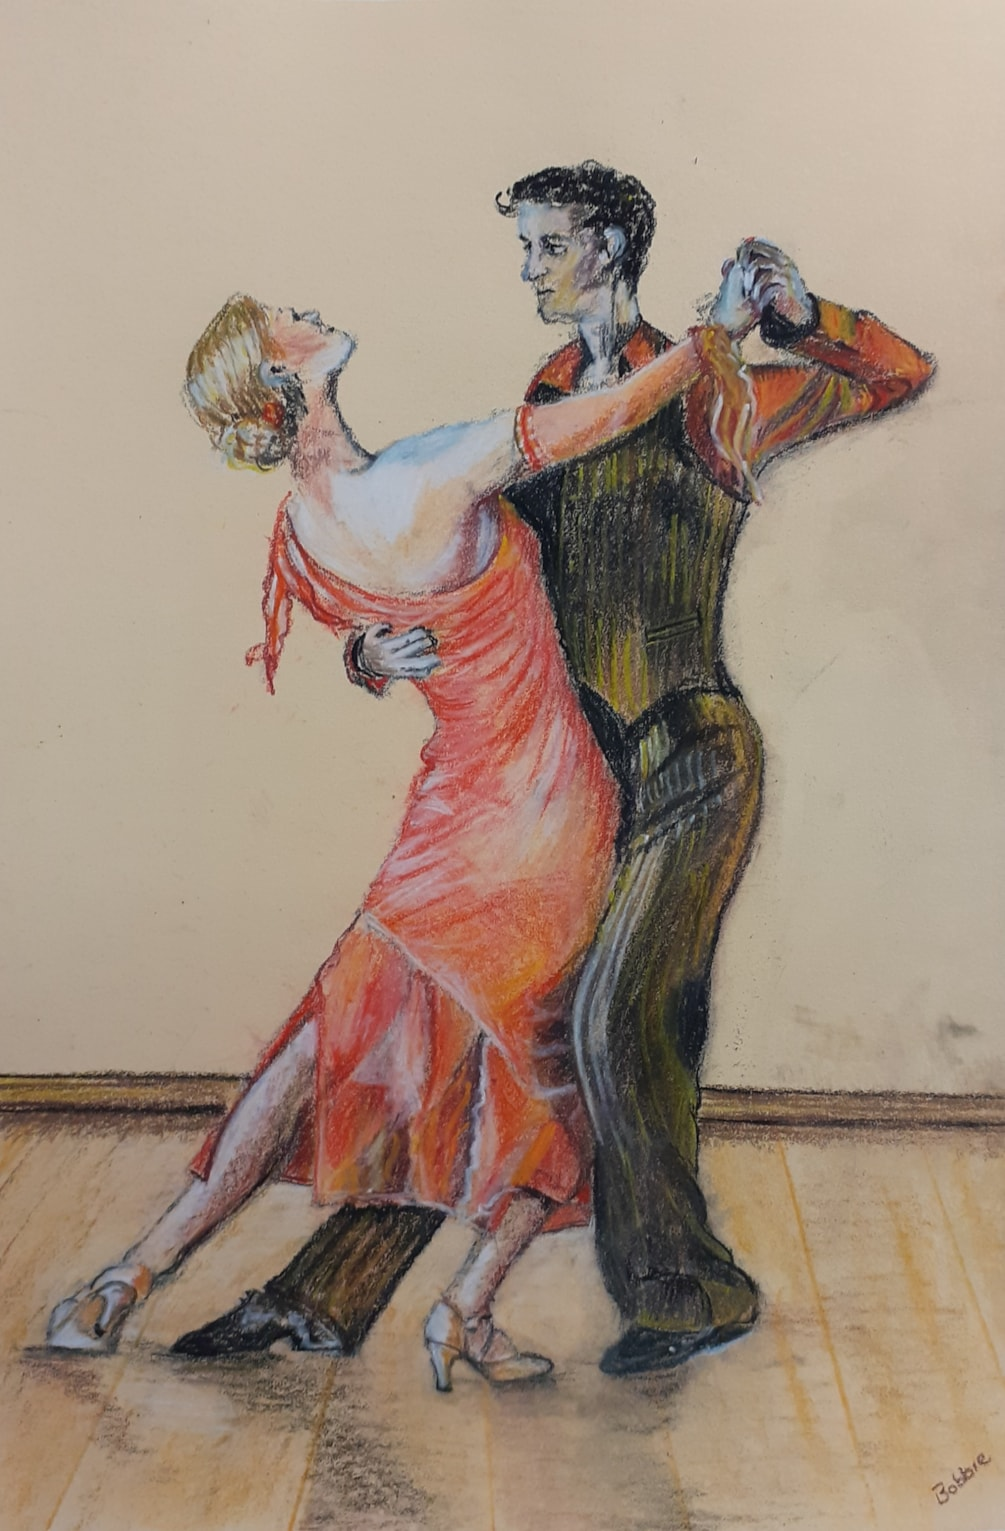 Tango - Pastel Pencil Drawing on honey coloures Mi Tientes paper - Mar 6th 2021